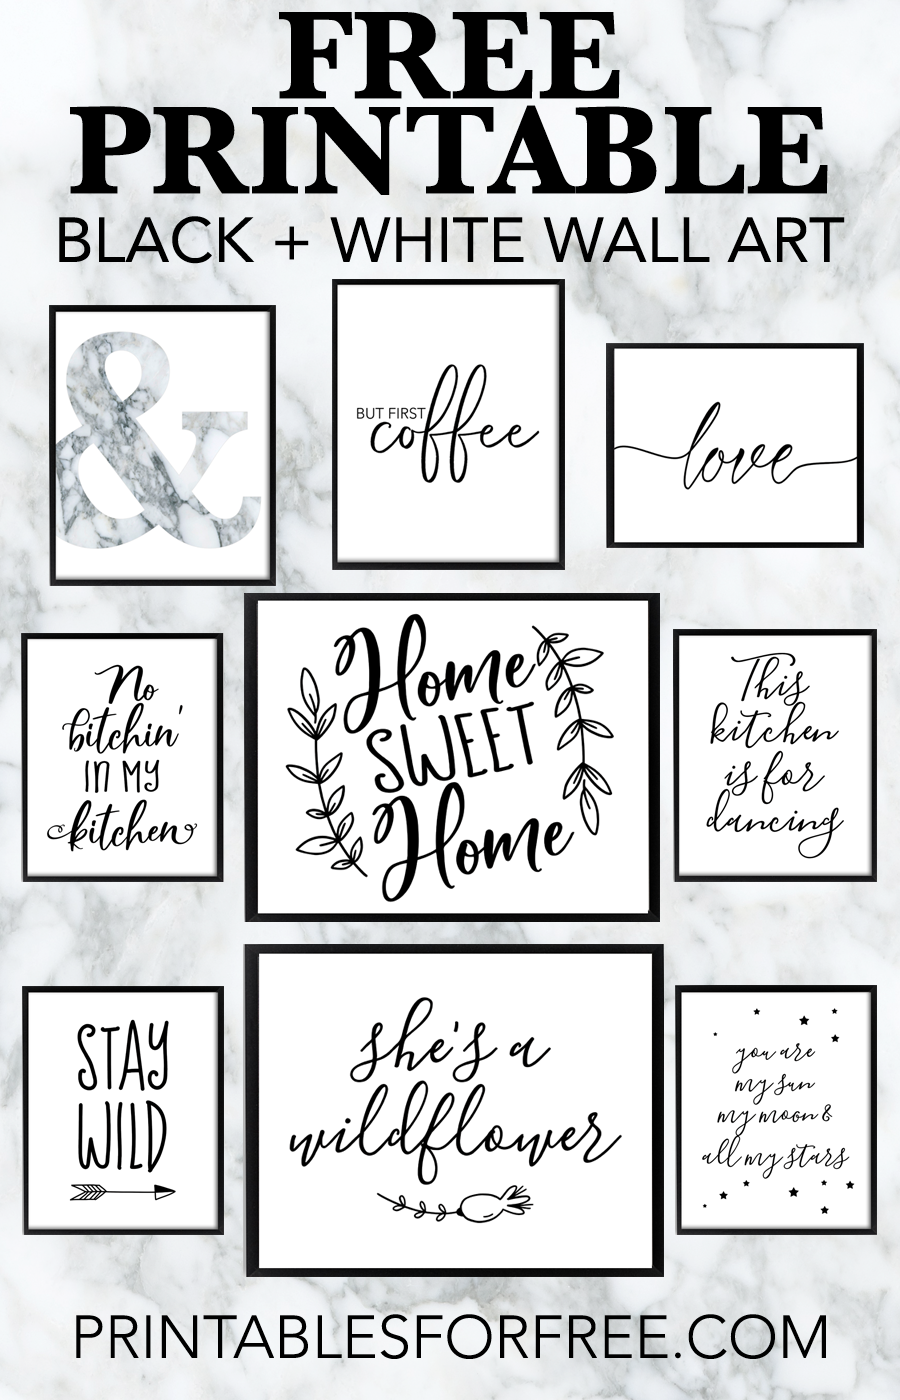 Free Printable Black and White Wall Art - download and print your own wall art for your home decor and office decor #freeprintable #wallart #blackandwhiteart #blackandwhite #black